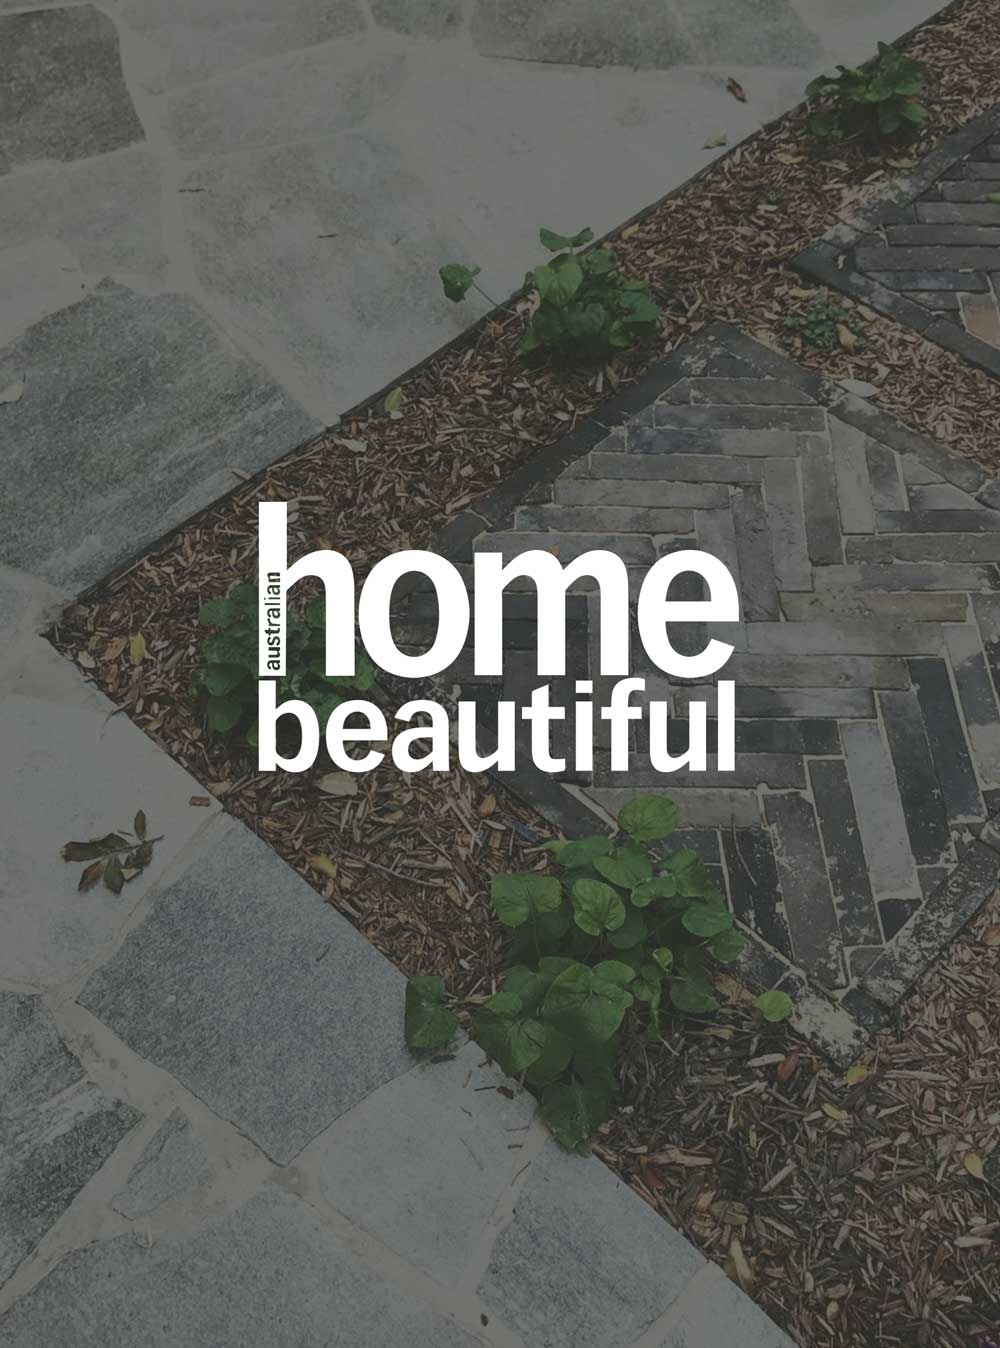 HOME BEAUTIFUL - 'The latest landscaping trend to take over outdoor pavers'Jan 22, 2019